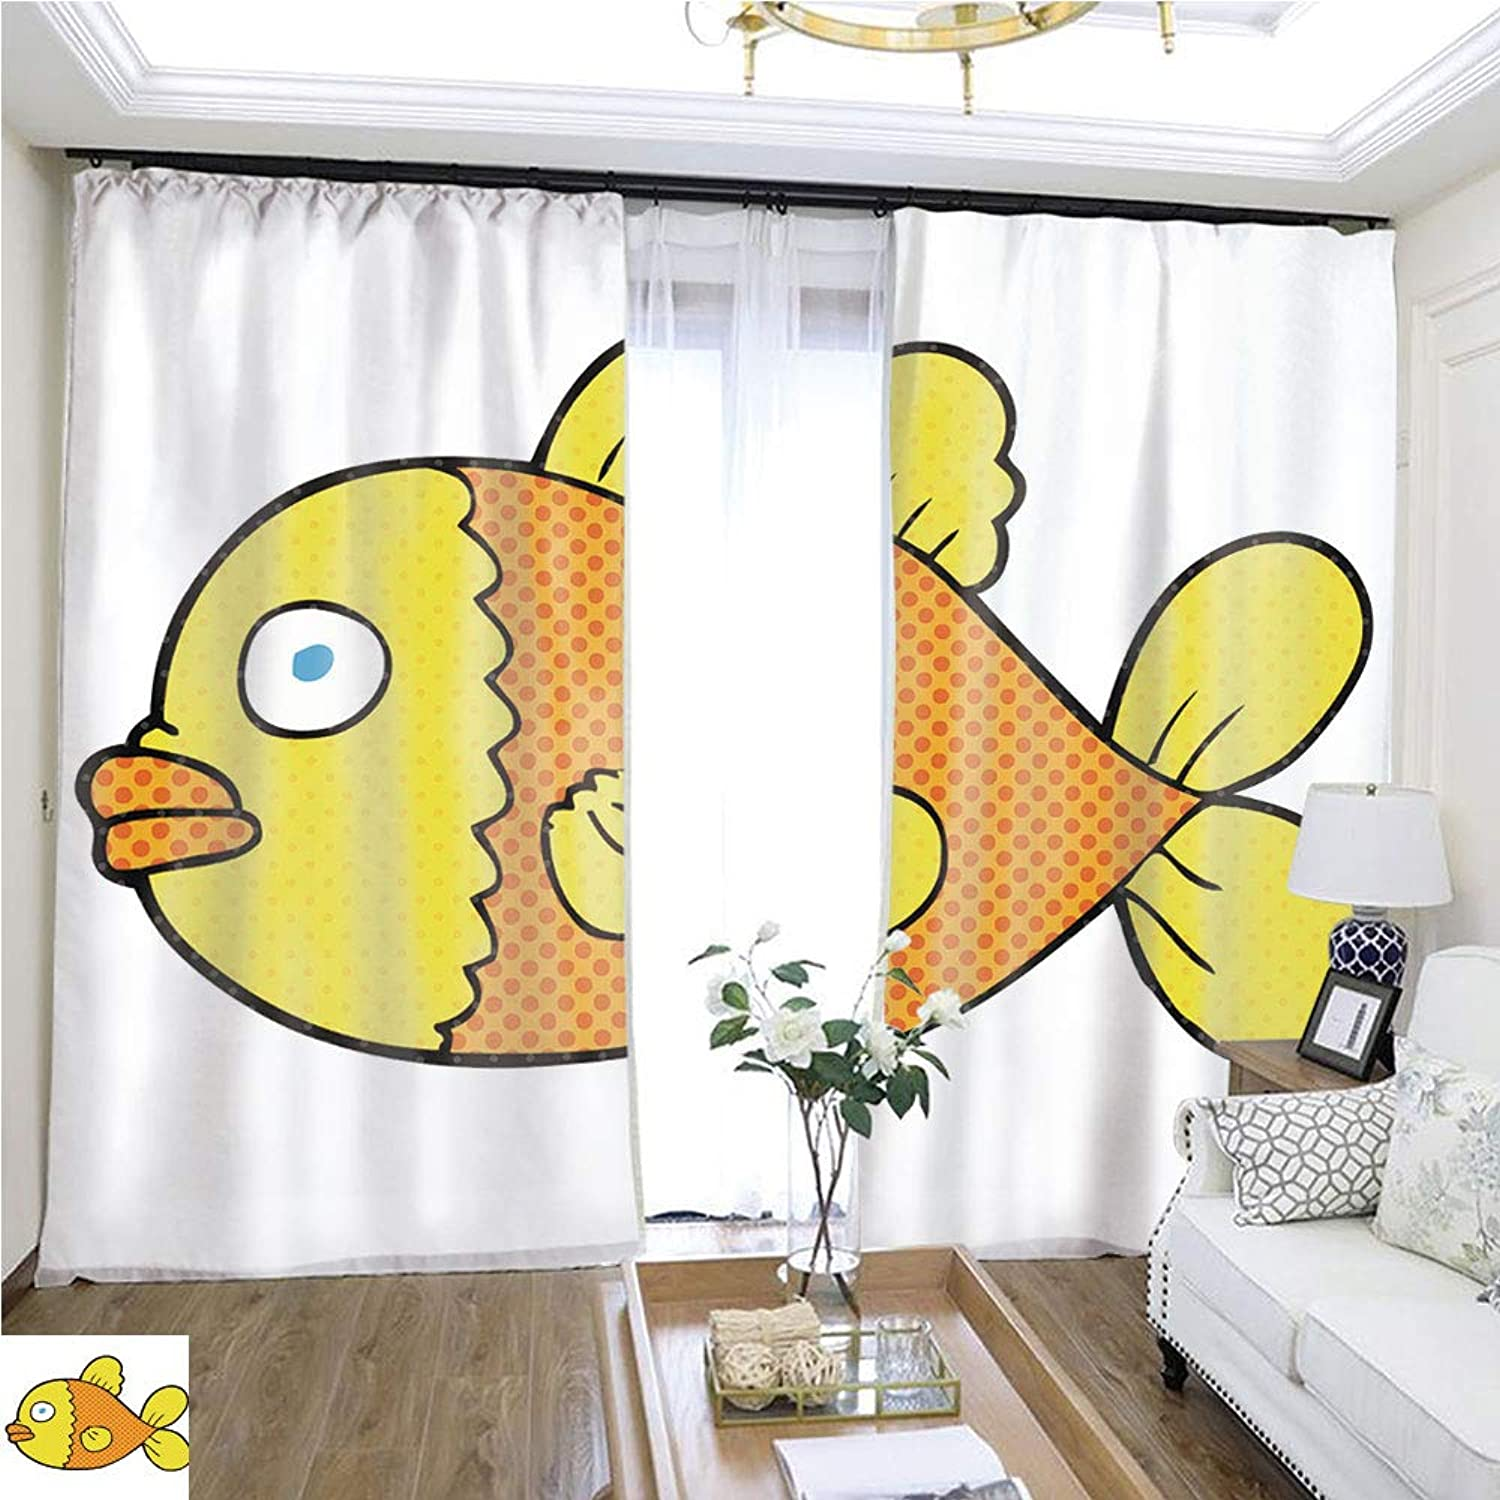 Air Port Screen Comic Book Speech Bubble Cartoon fish1 W96 x L300 Provide Heat Highprecision Curtains for bedrooms Living Rooms Kitchens etc.